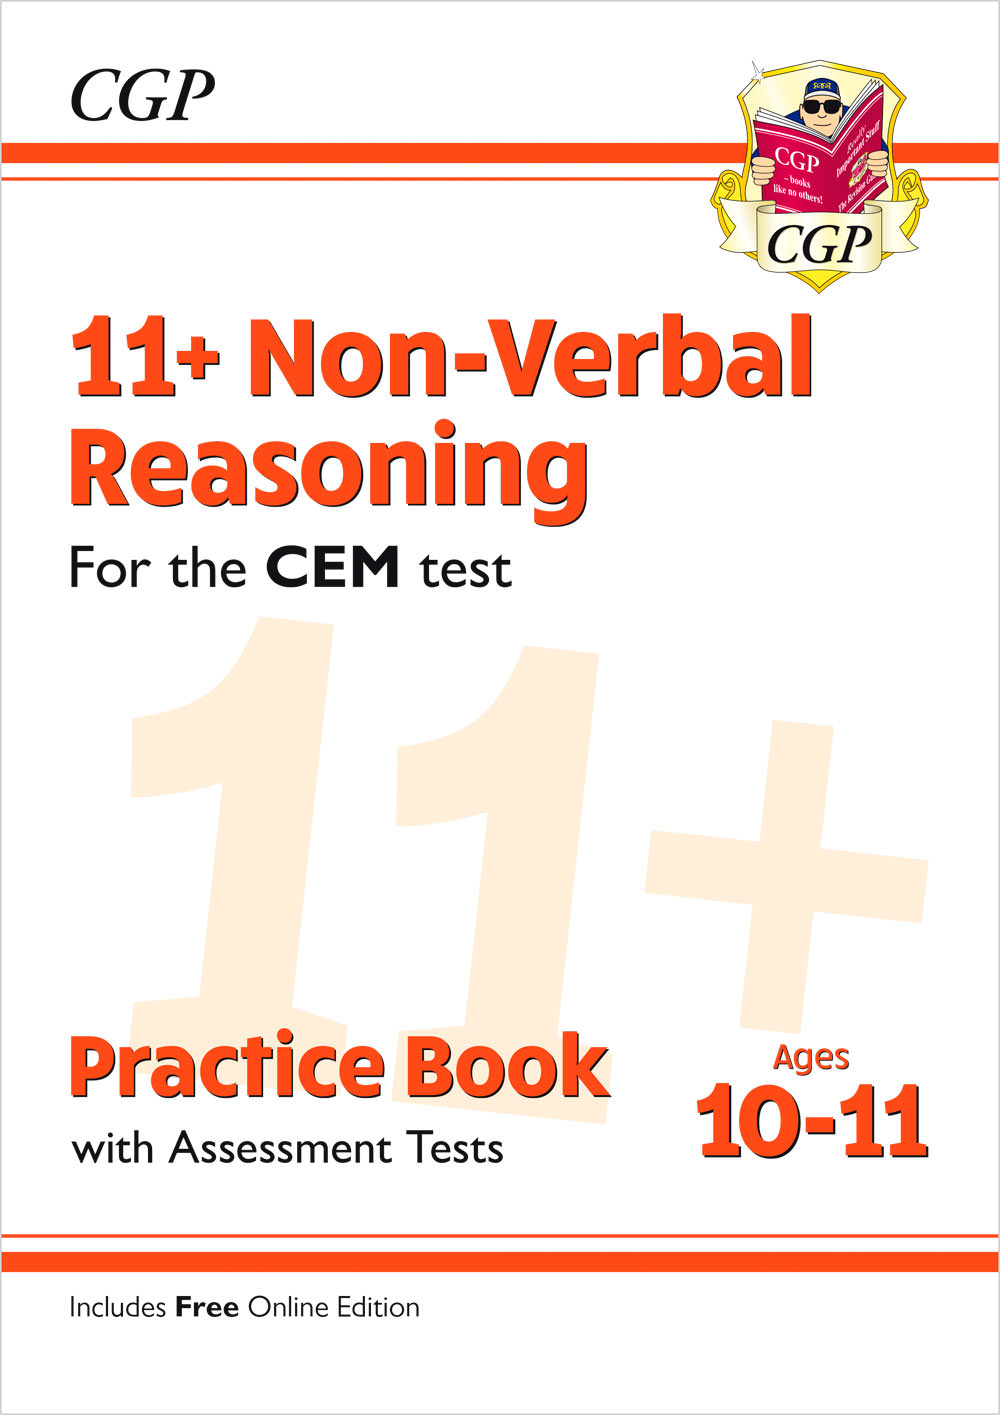 N6QDE2 - New 11+ CEM Non-Verbal Reasoning Practice Book & Assessment Tests - Ages 10-11 (with Online